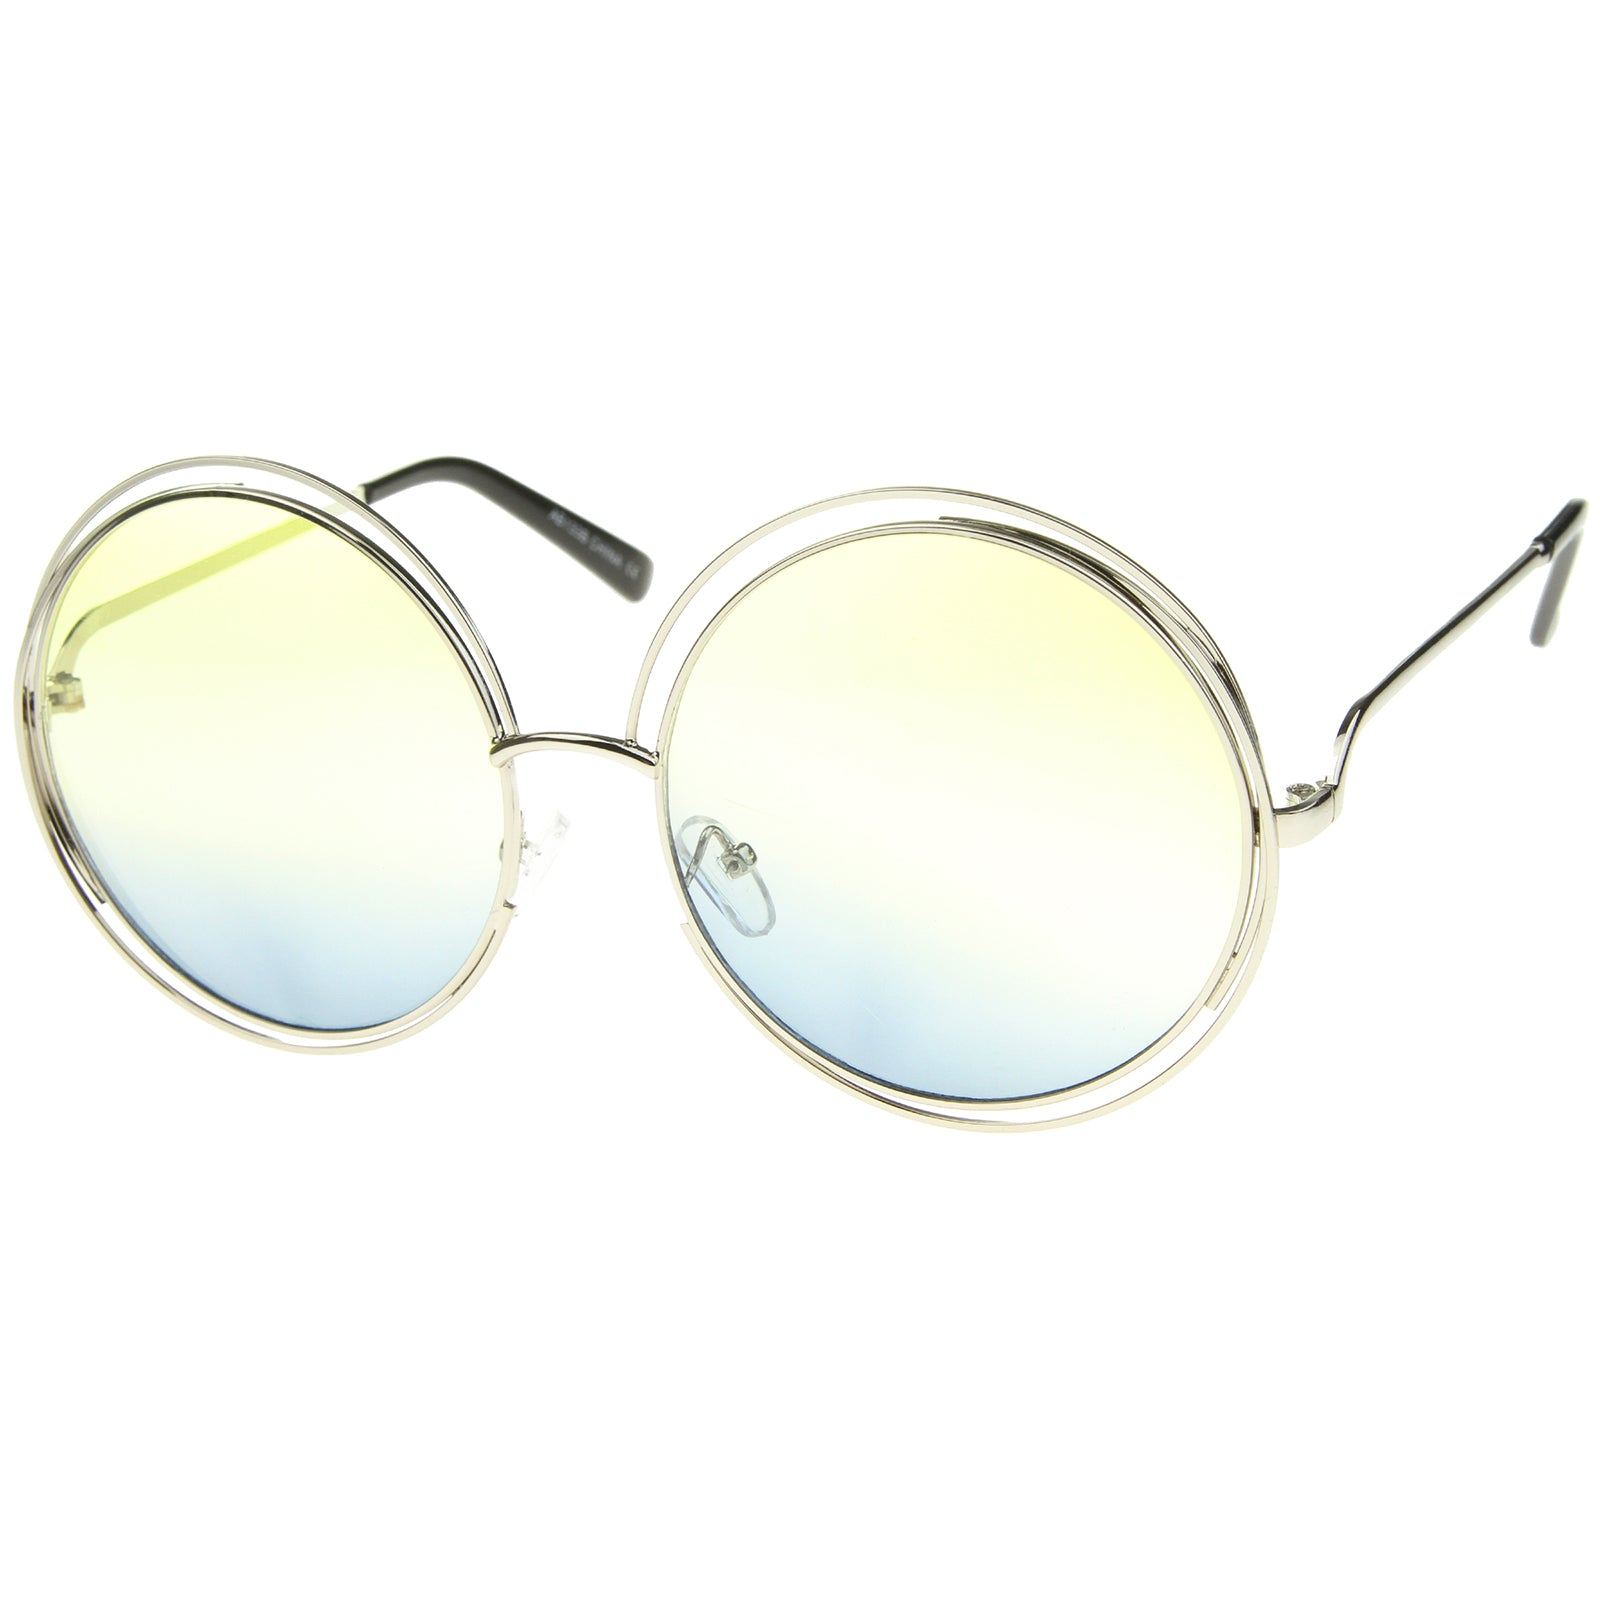 Oversize Wire Frame Gradient Two-Tone Color Lens Round Sunglasses 61mm - sunglass.la - 14